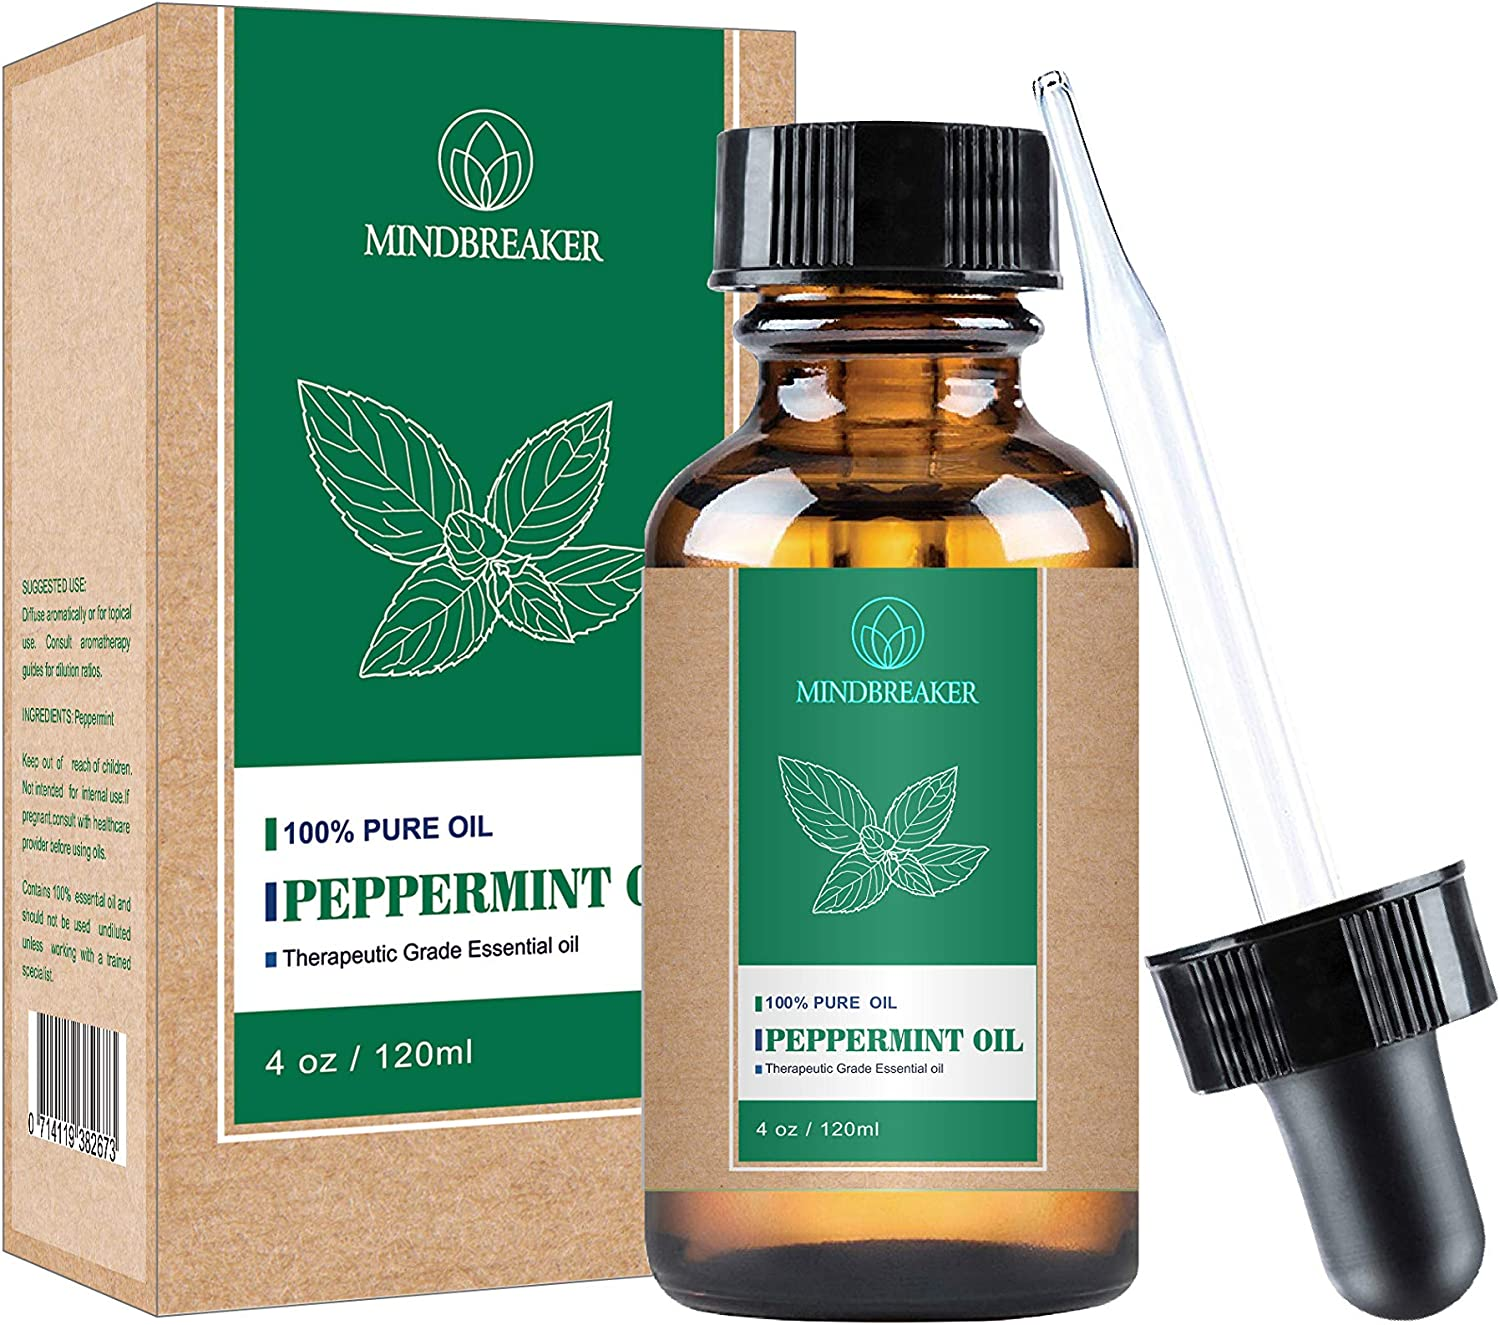 Peppermint Essential Oil, 100% Pure Organic and Natural, Therapeutic Grade for Diffuser,Relaxation, Hair and Body Blends (Peppermint oil-4oz)